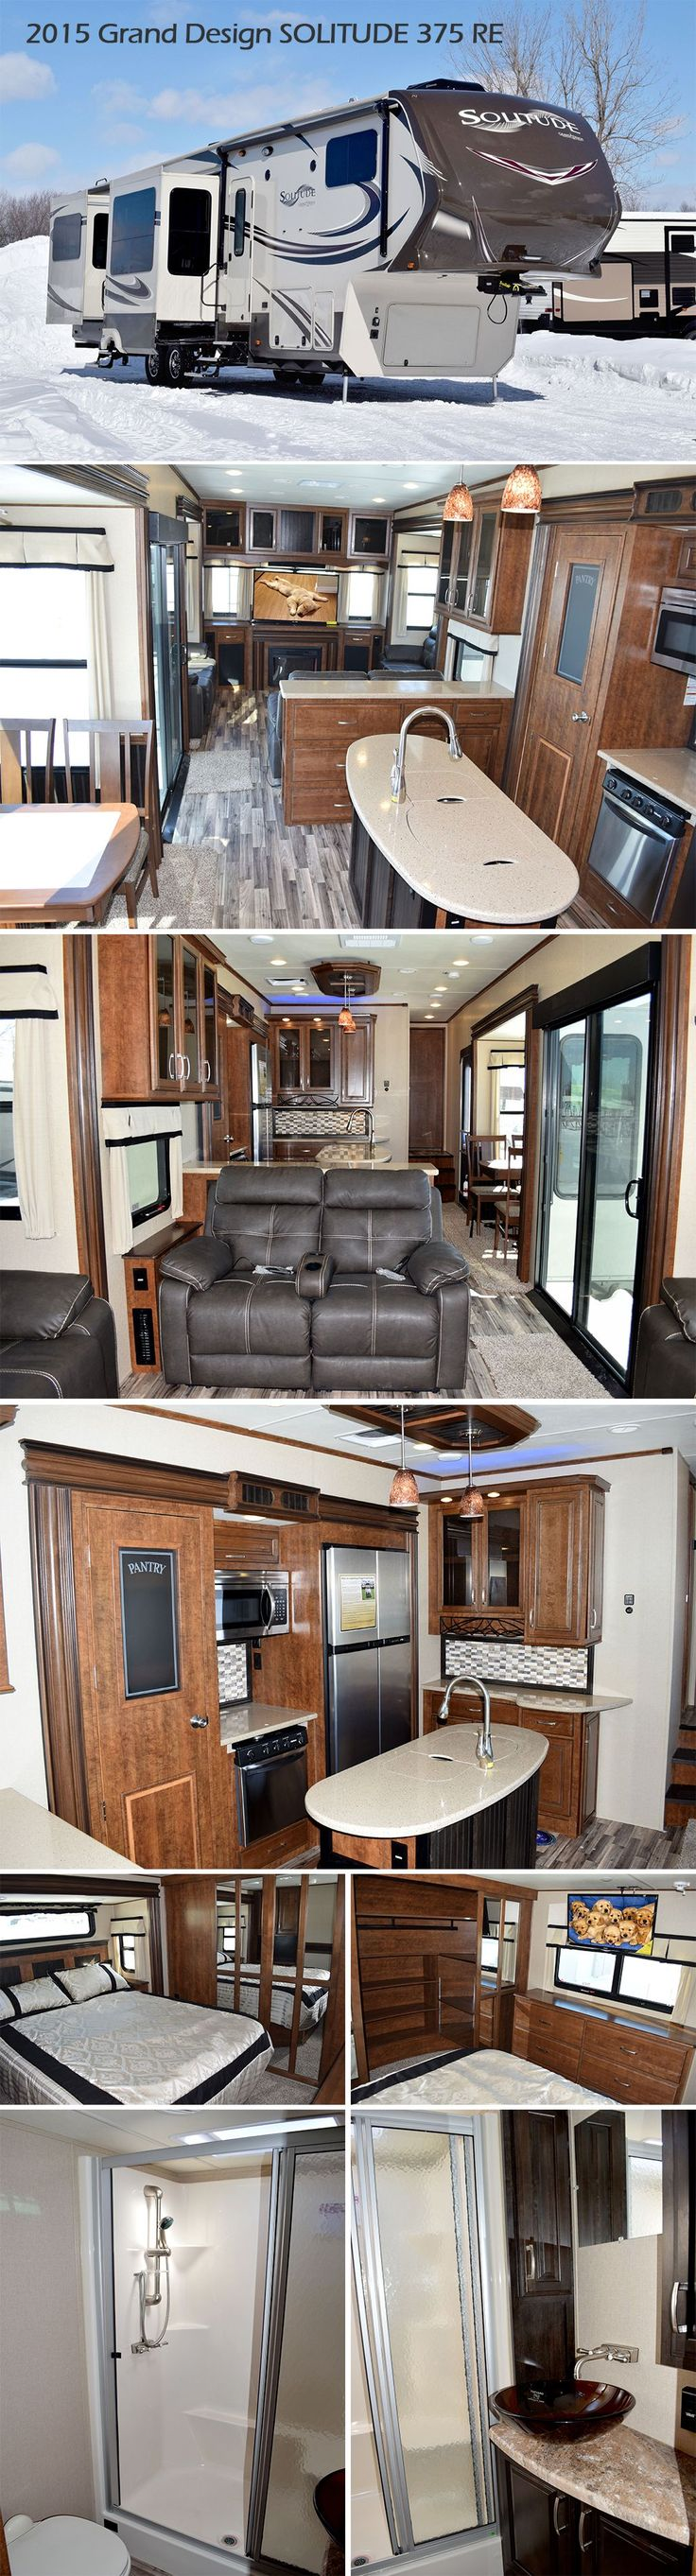 2015 Grand Design SOLITUDE 375RE Fifth Wheel. If more room is what you  desire,